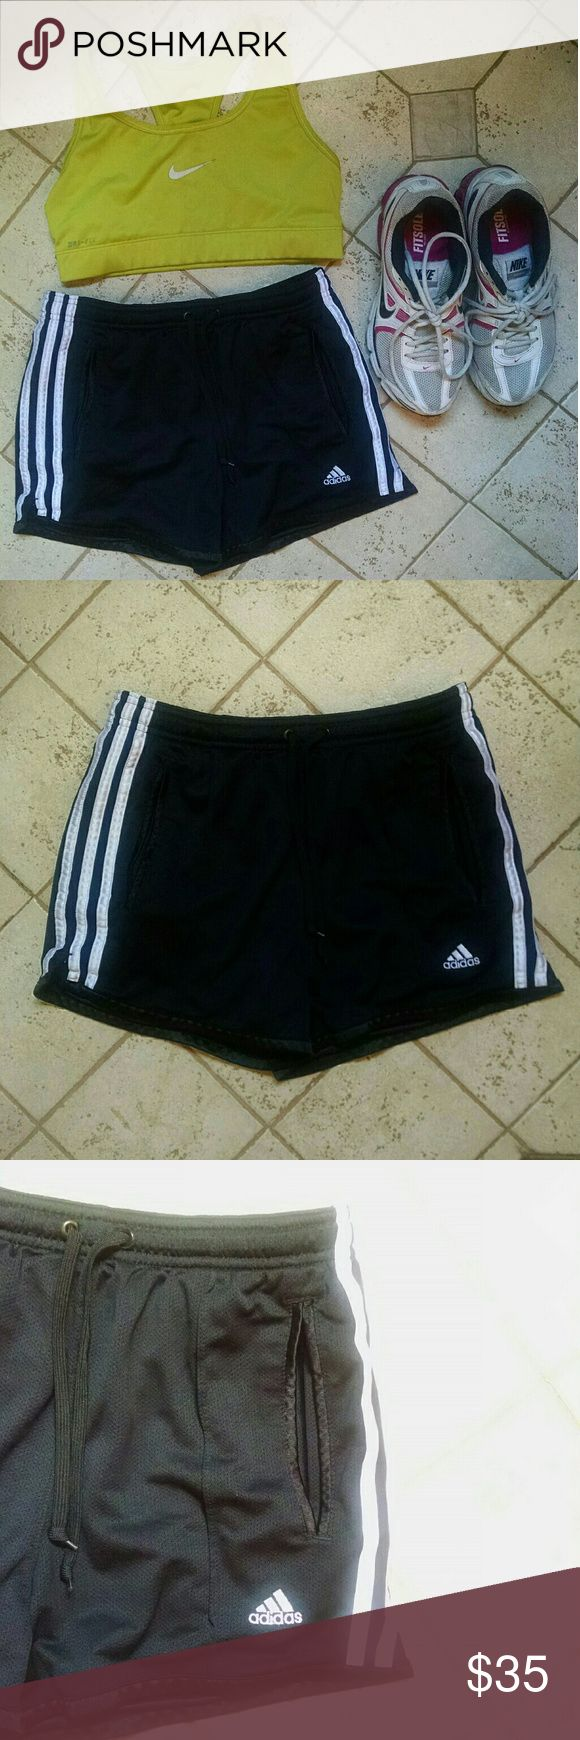 Adidas Soccer shorts women's Worn maybe twice. In perfect condition. No signs of wear. Lined pockets. Very comfortable. Purchased at the end of indoor season and just have too many pairs. adidas Shorts